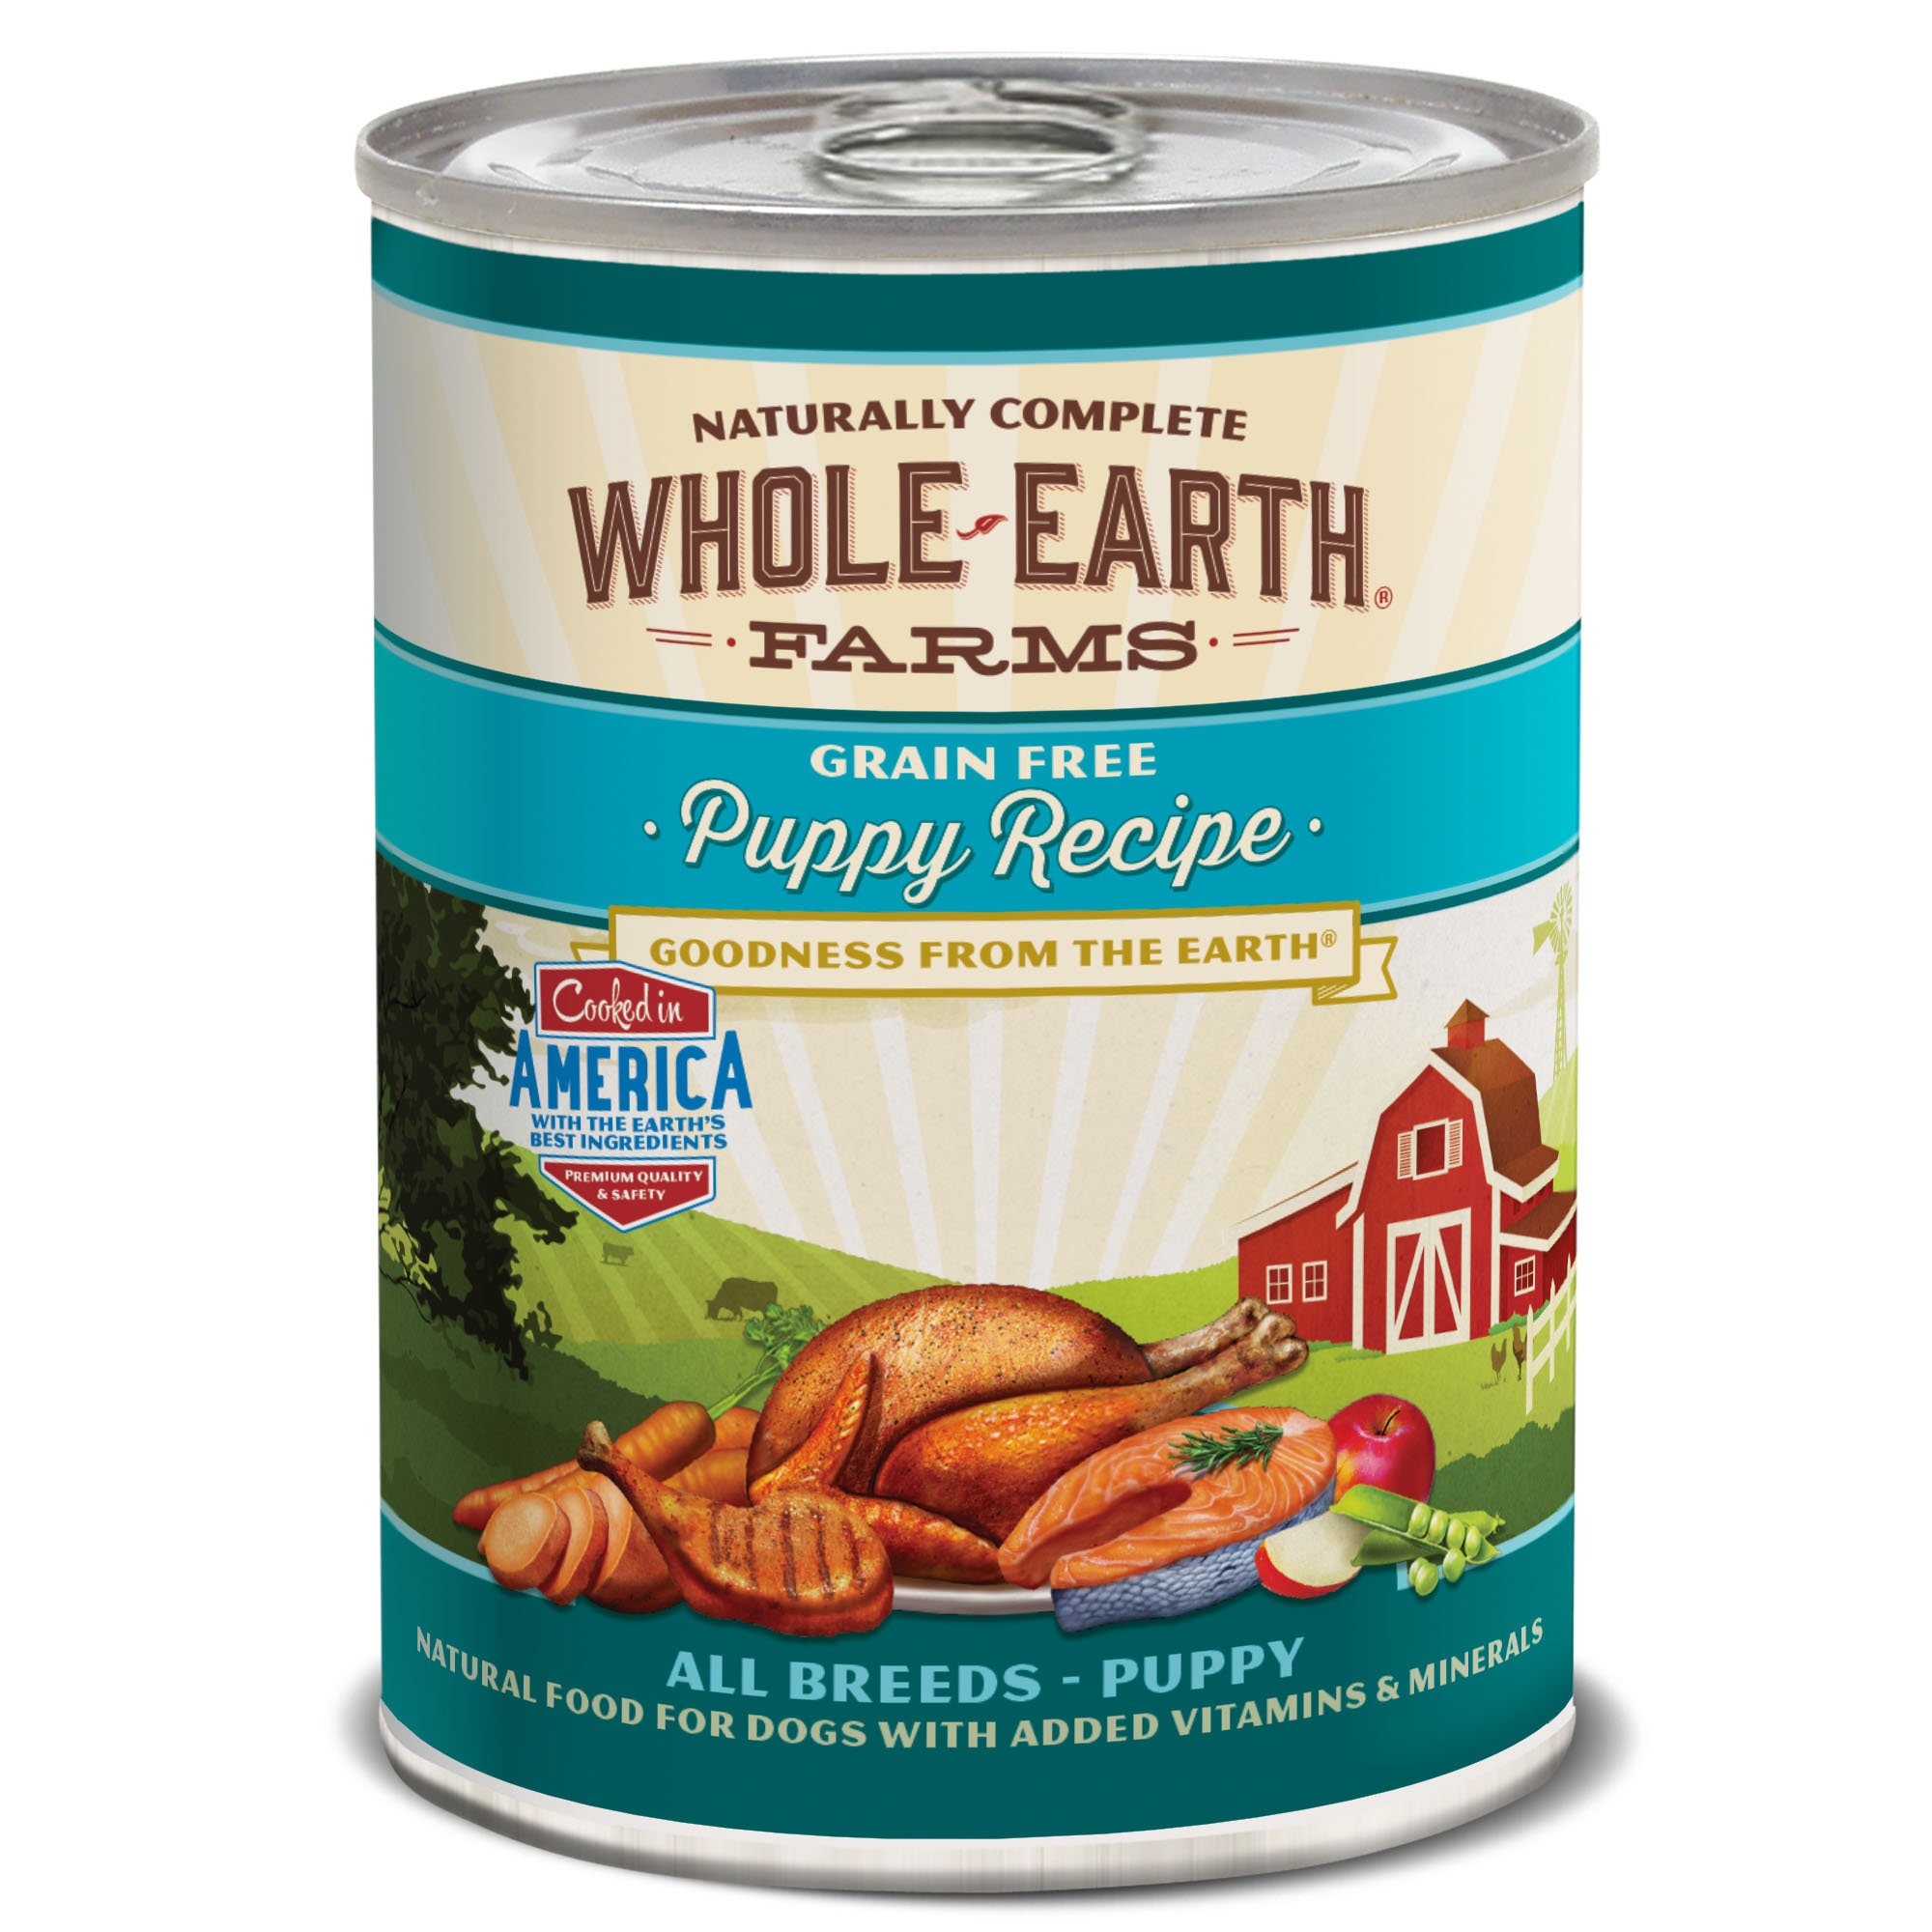 Whole Earth Farms Grain Free Canned Puppy Food | Petco